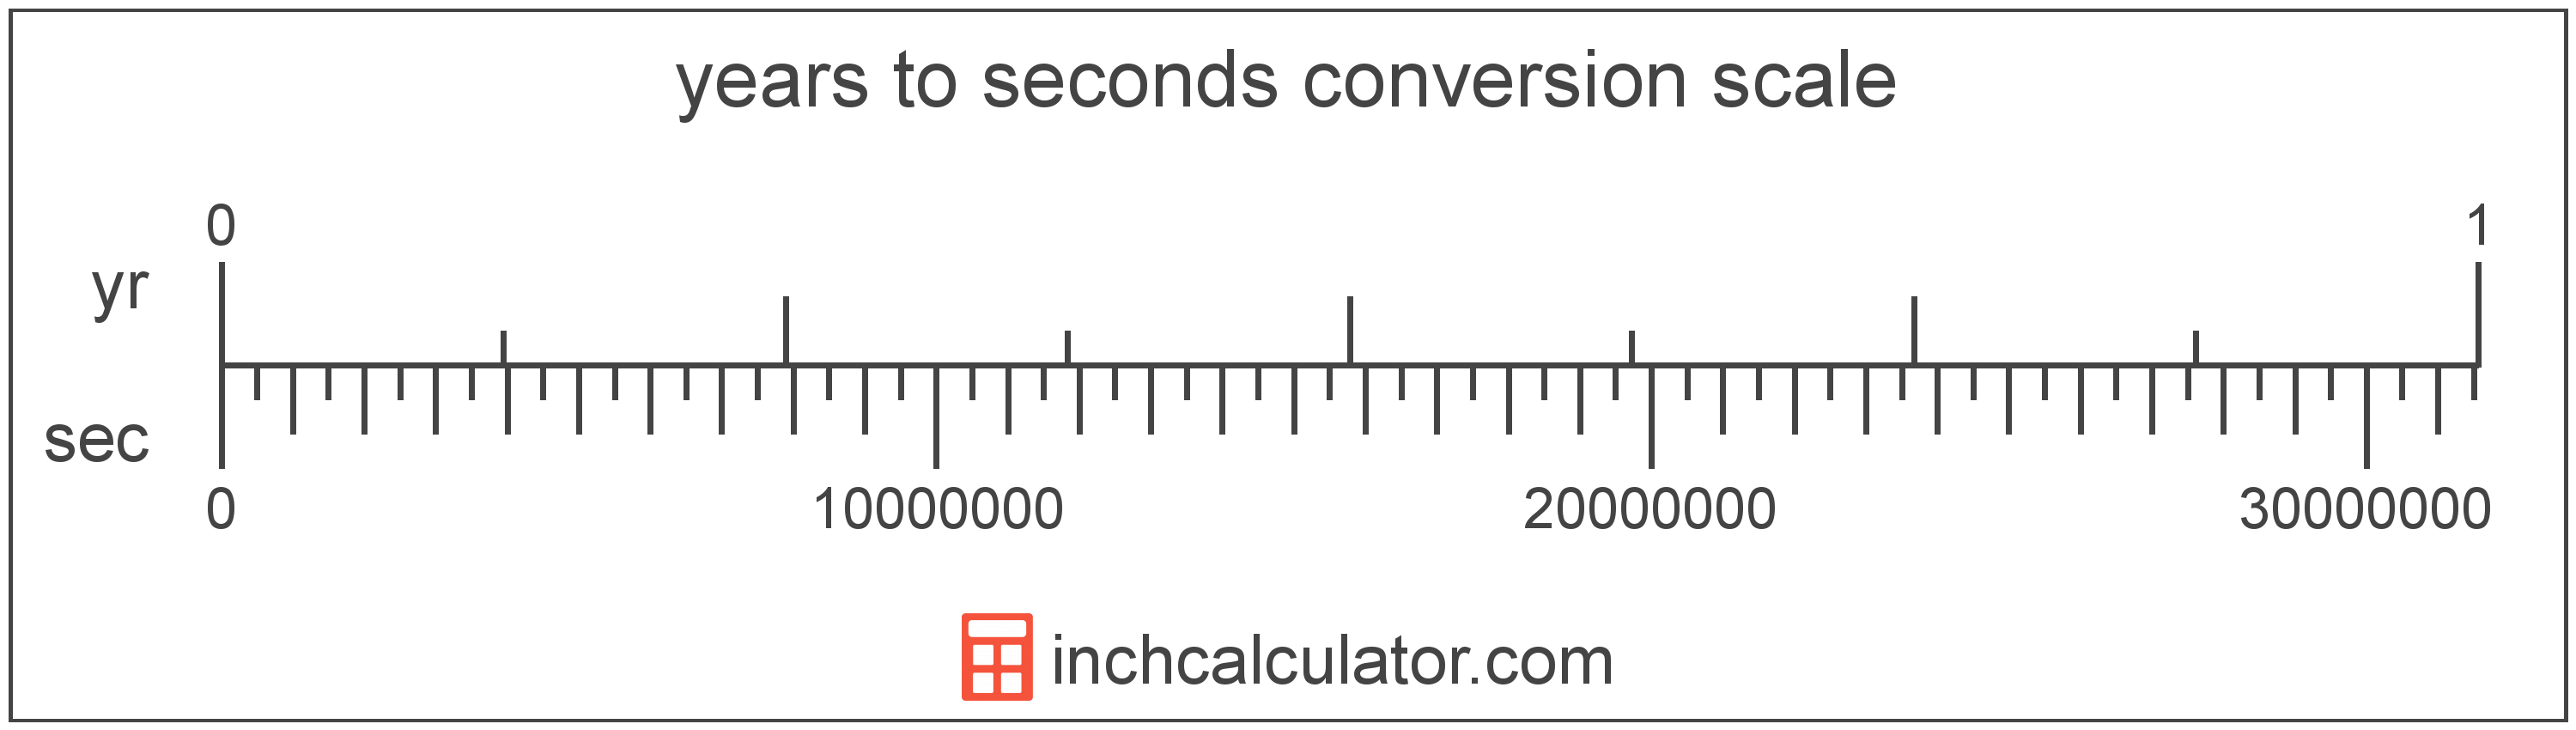 conversion scale showing years and equivalent seconds time values